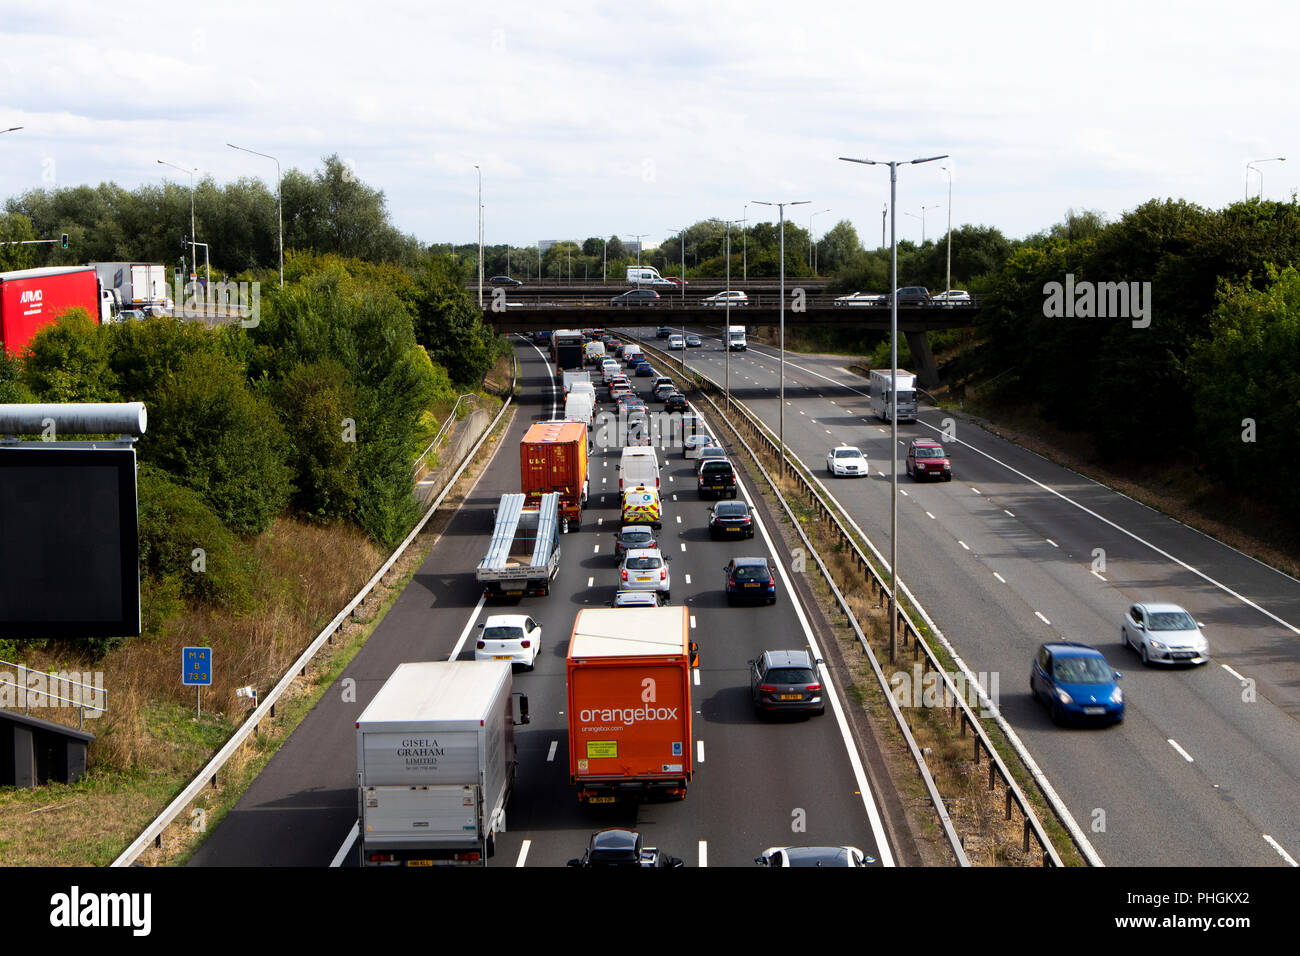 traffic jam due to accident on M4 motorway at junction 12